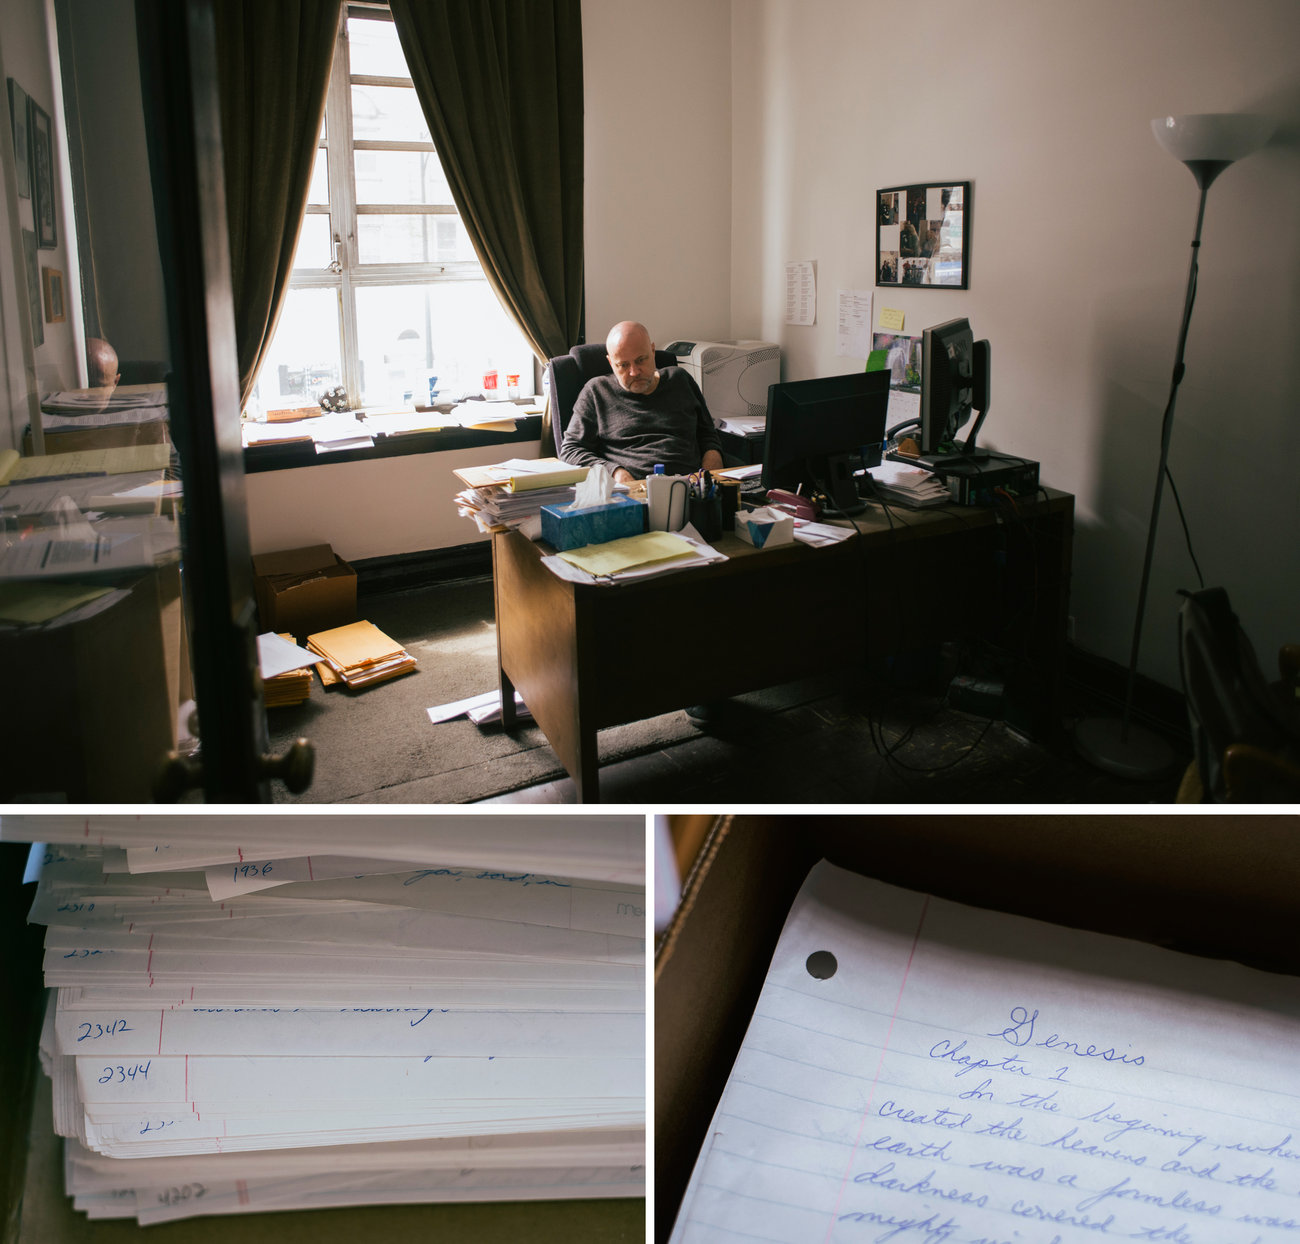 After 12 years in isolation, working in an office with other people was difficult for Brian Nelson. Now he has his own office down the street from the Uptown People's Law Center. In his office, he keeps a box with the more than 4,000 pages he hand-copied from the Bible while he was in prison. (Peter Hoffman for NPR)